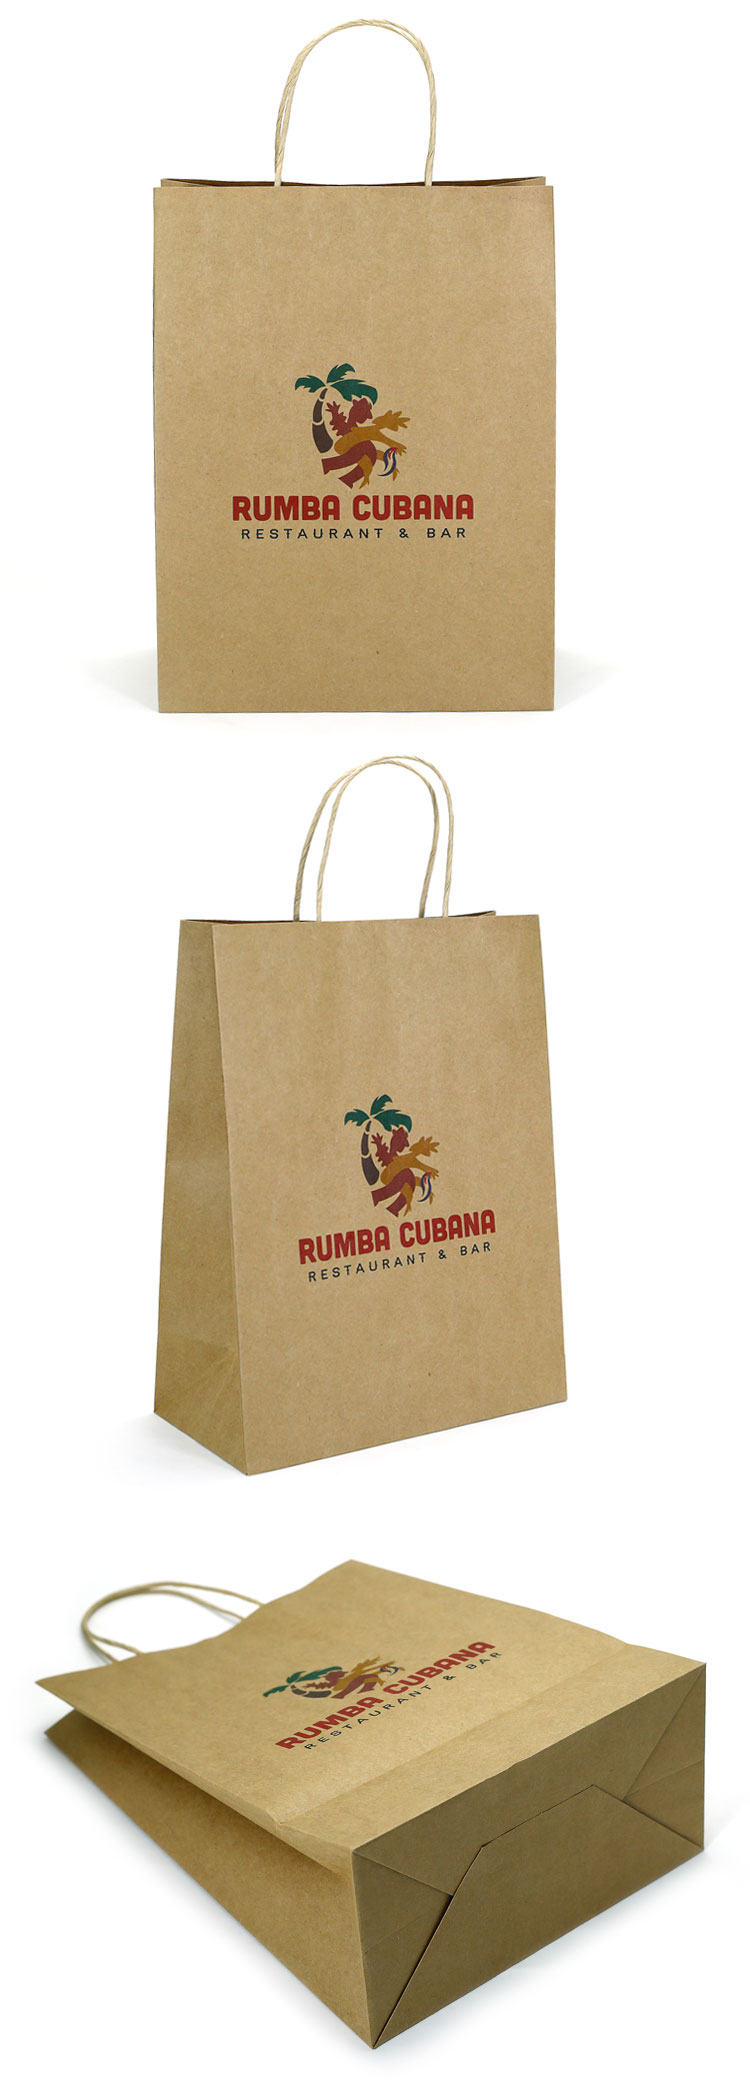 KPBSL1726 cheap recycled custom printing logo,high quality kraft paper bag for food